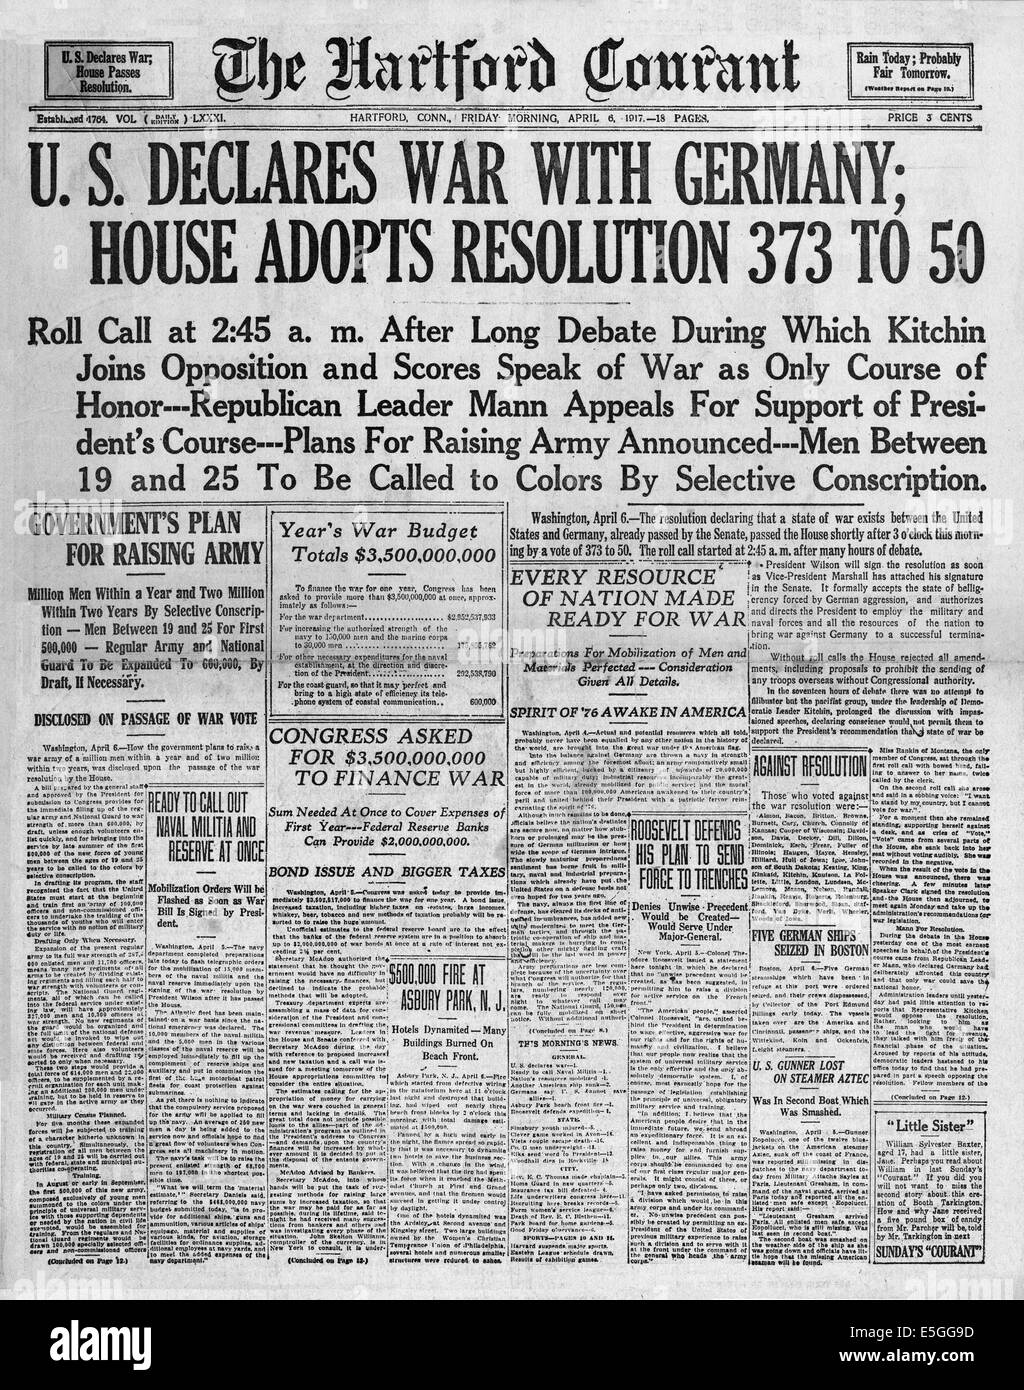 1917 The Hartford Courant (USA) front page reporting the